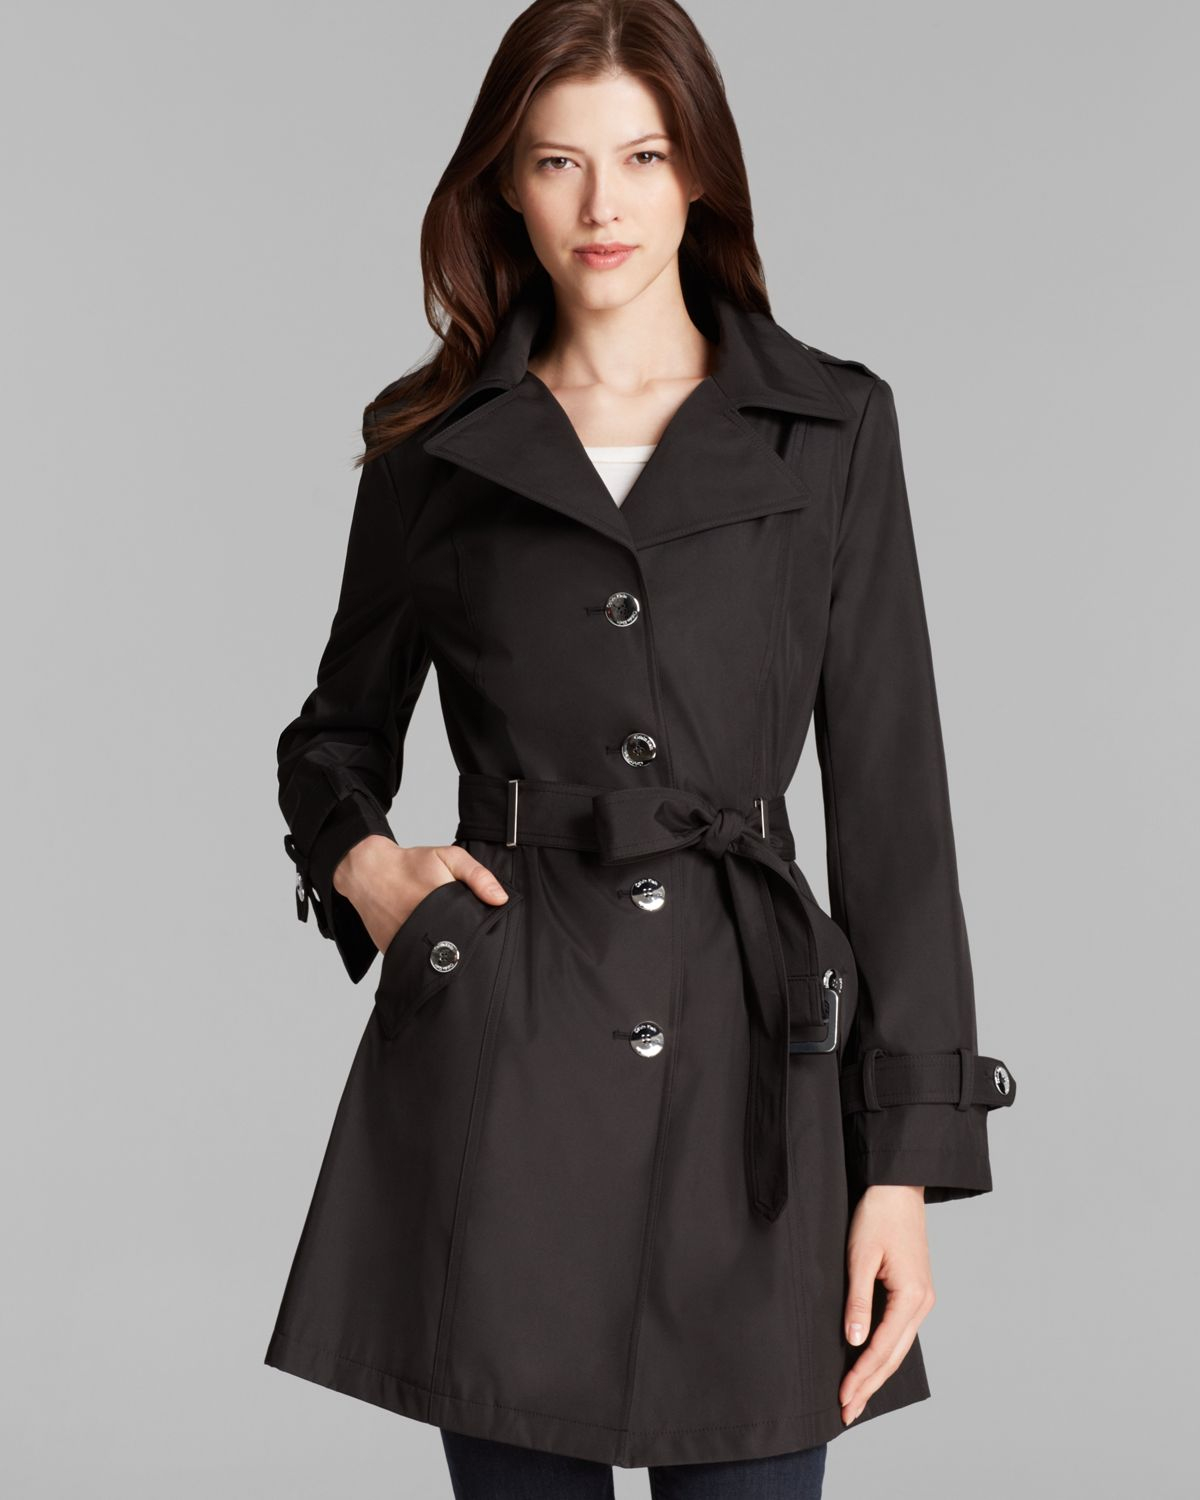 black trench coat with hood - photo #42